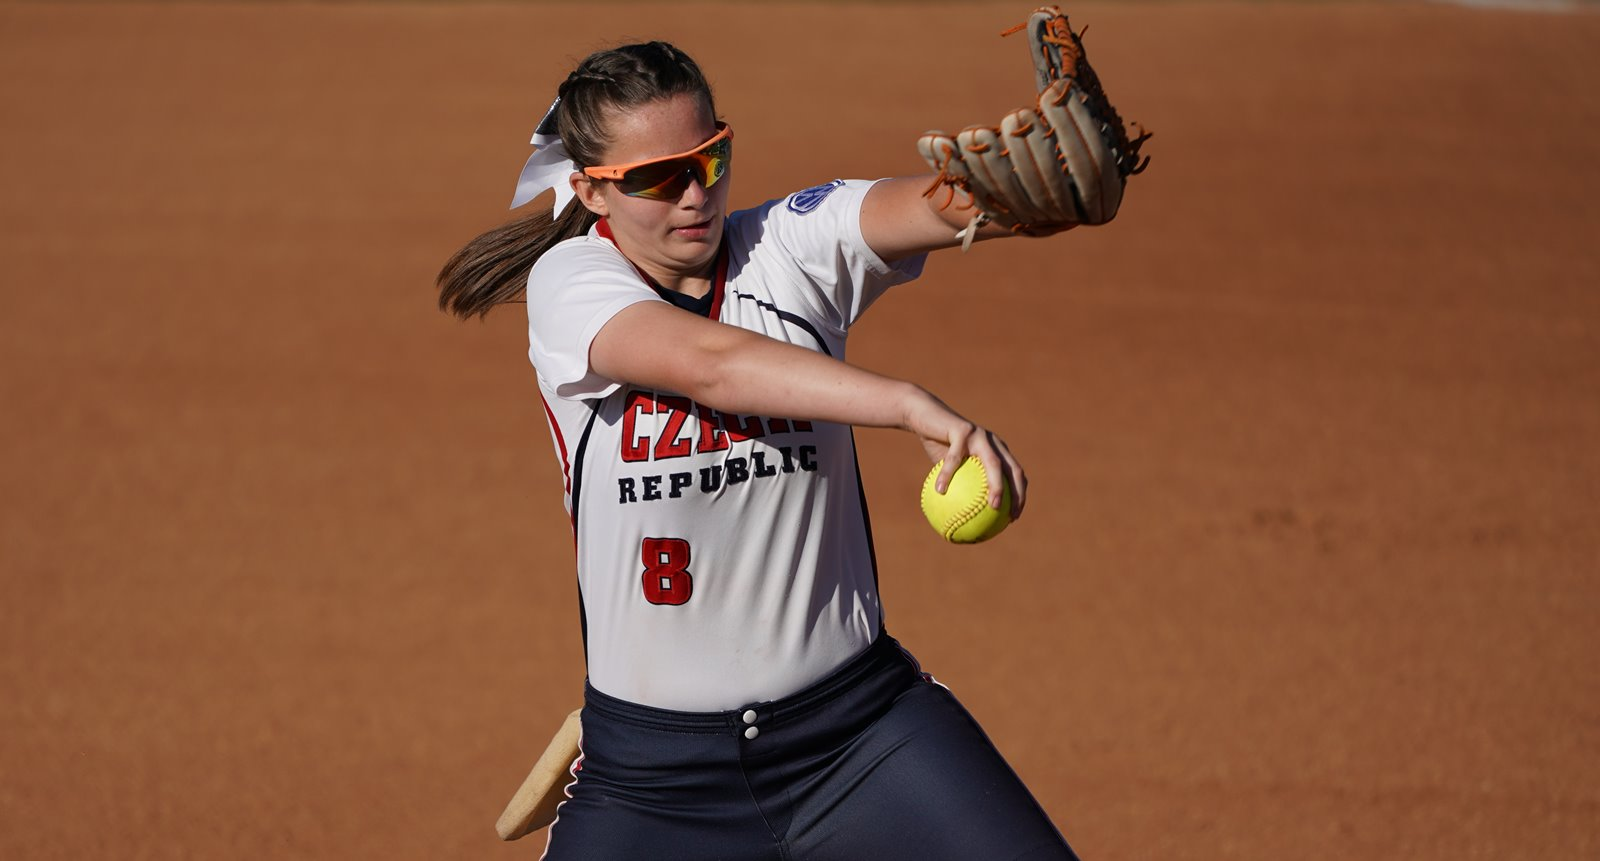 The home run was the first run allowed by Czech pitcher Adela Linkova